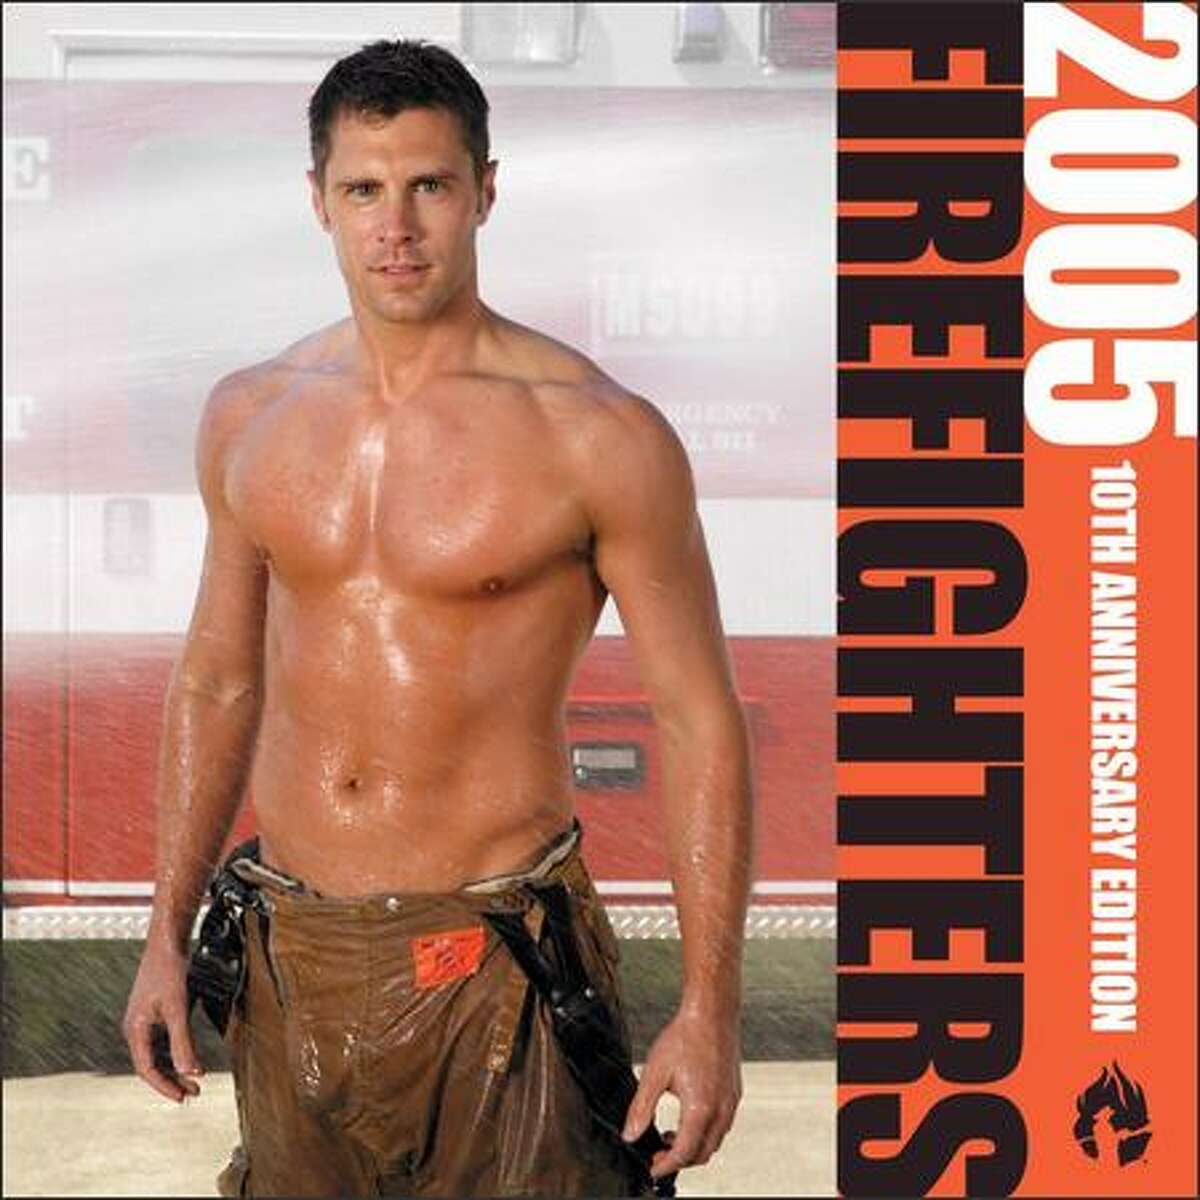 Andy Finseth was picked for the Firefighter calendar cover twice -- in 2005 and 2004.